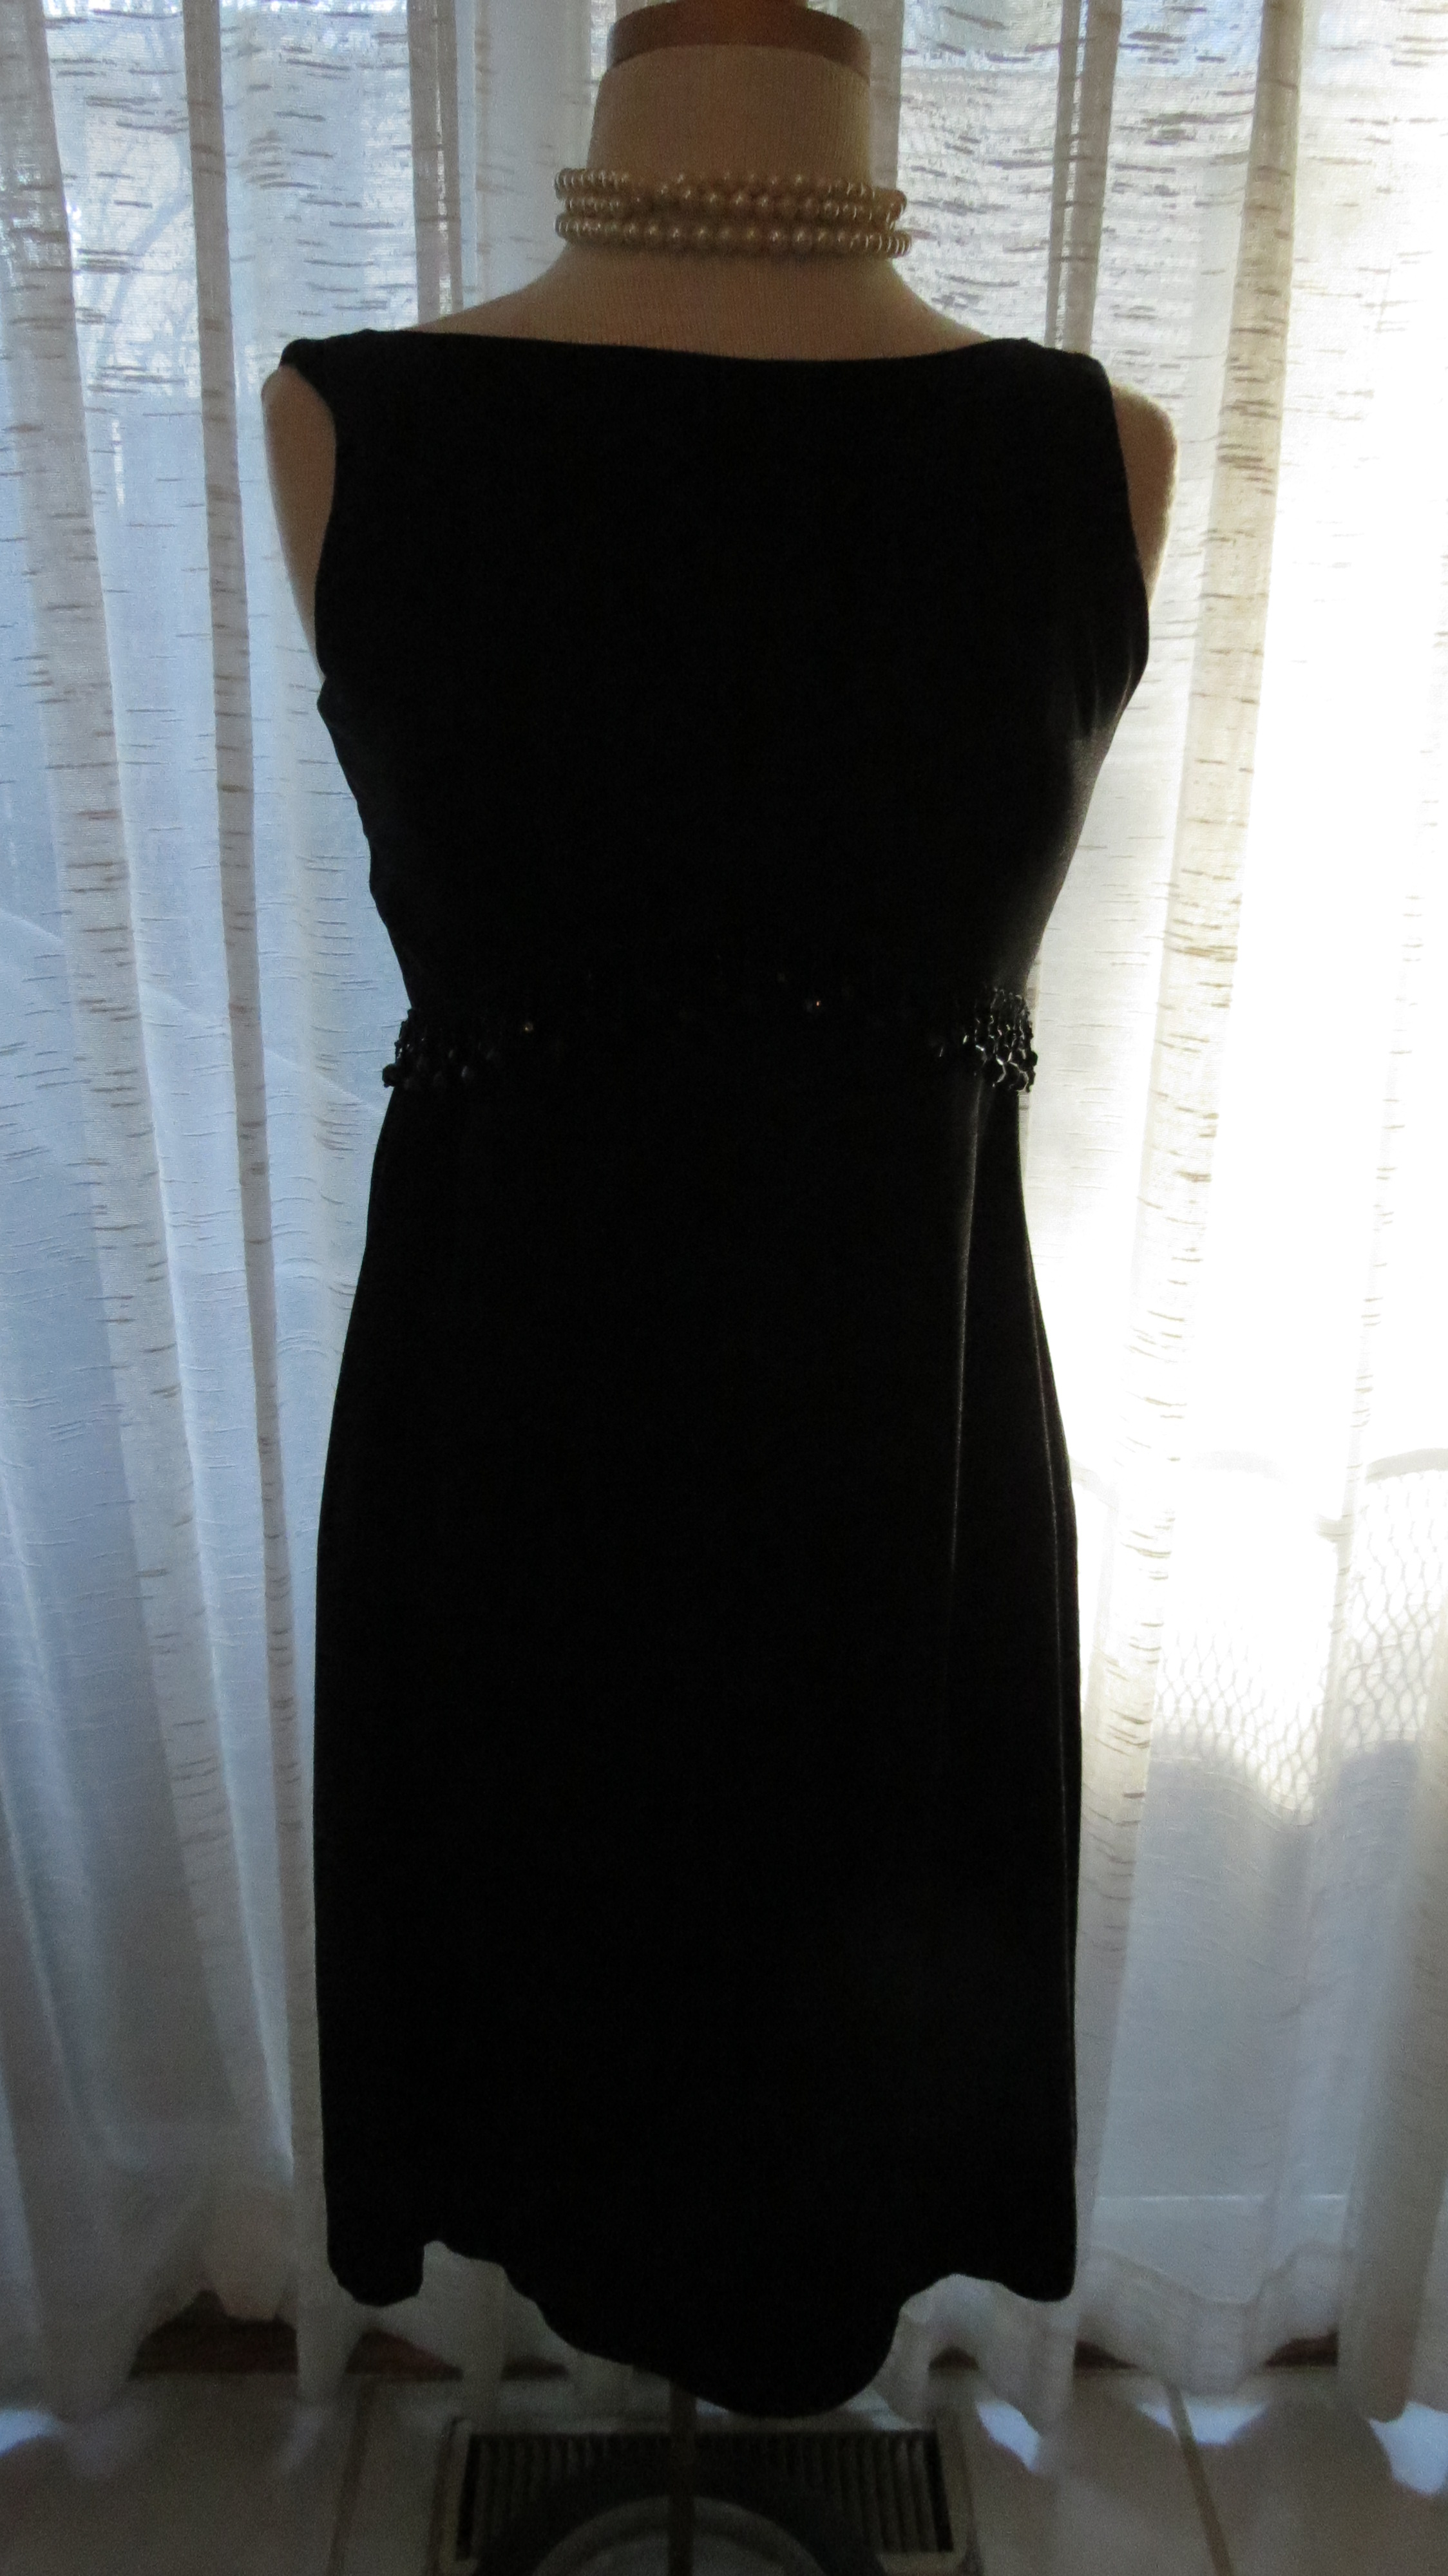 A FAVORITE LITTLE TRUE VINTAGE LATE '60'S - EARLY '70'S BLACK DRESS